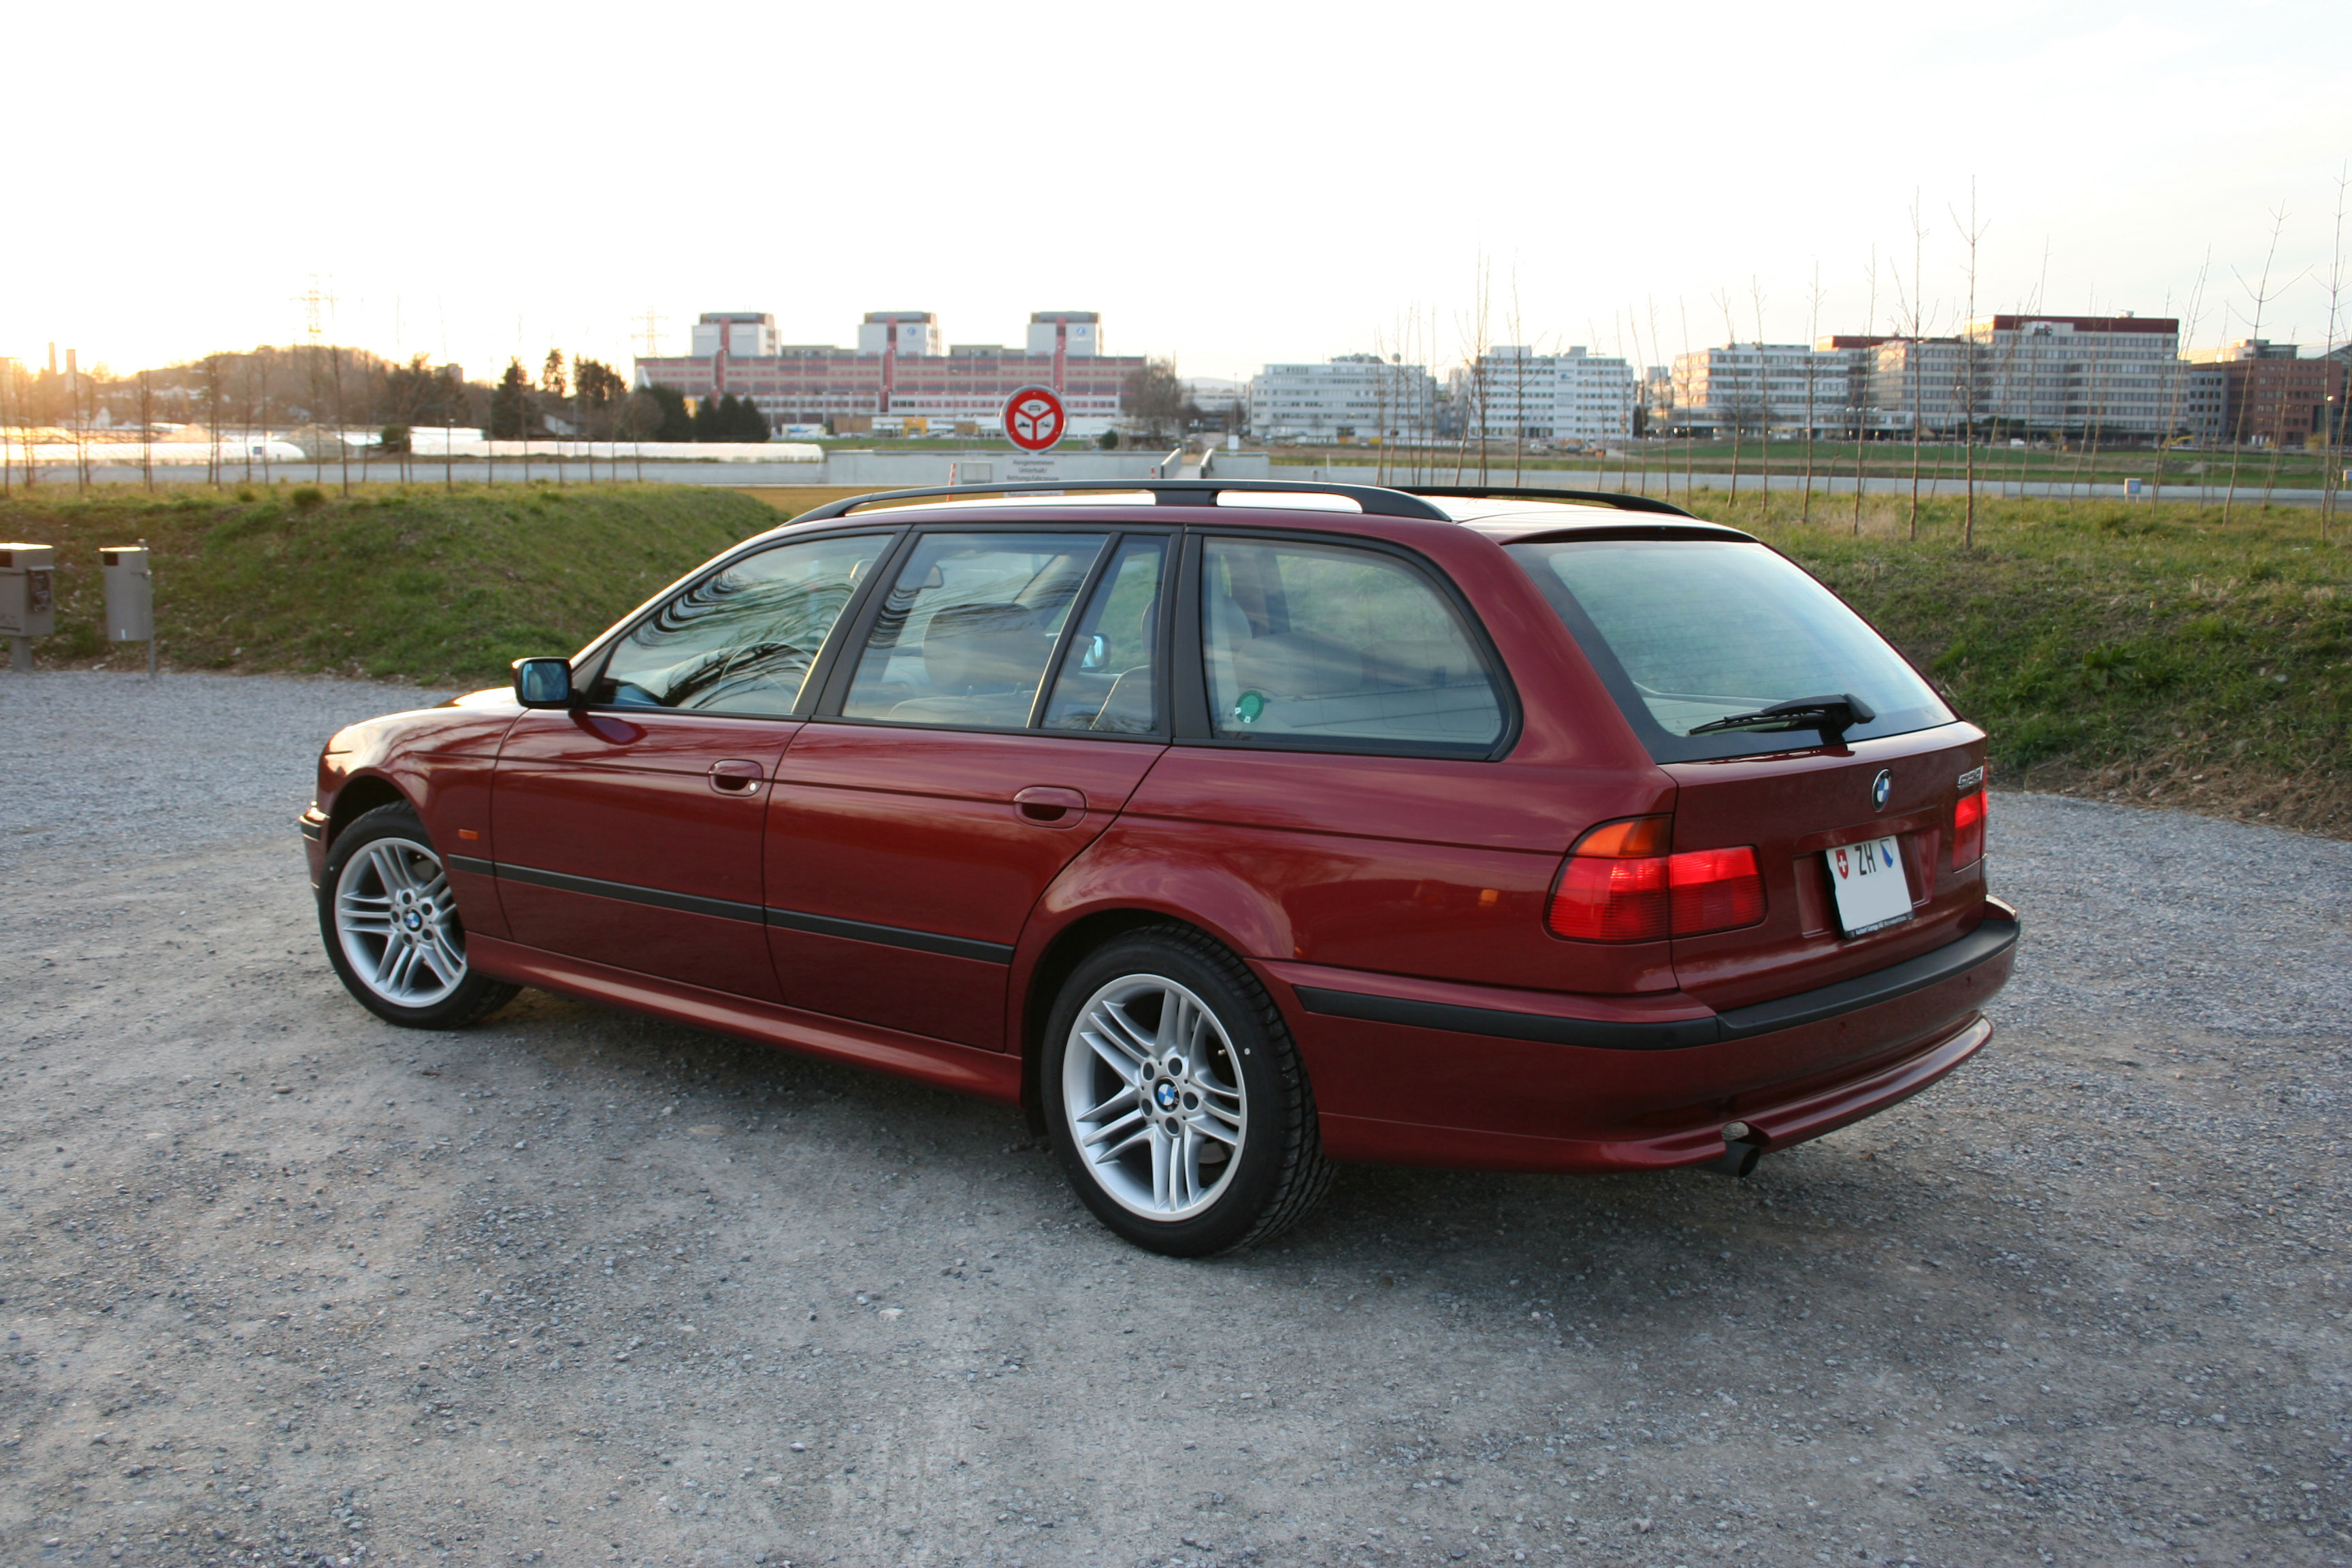 file bmw e39 touring siena rot 1 jg 2000 jpg wikimedia commons. Black Bedroom Furniture Sets. Home Design Ideas